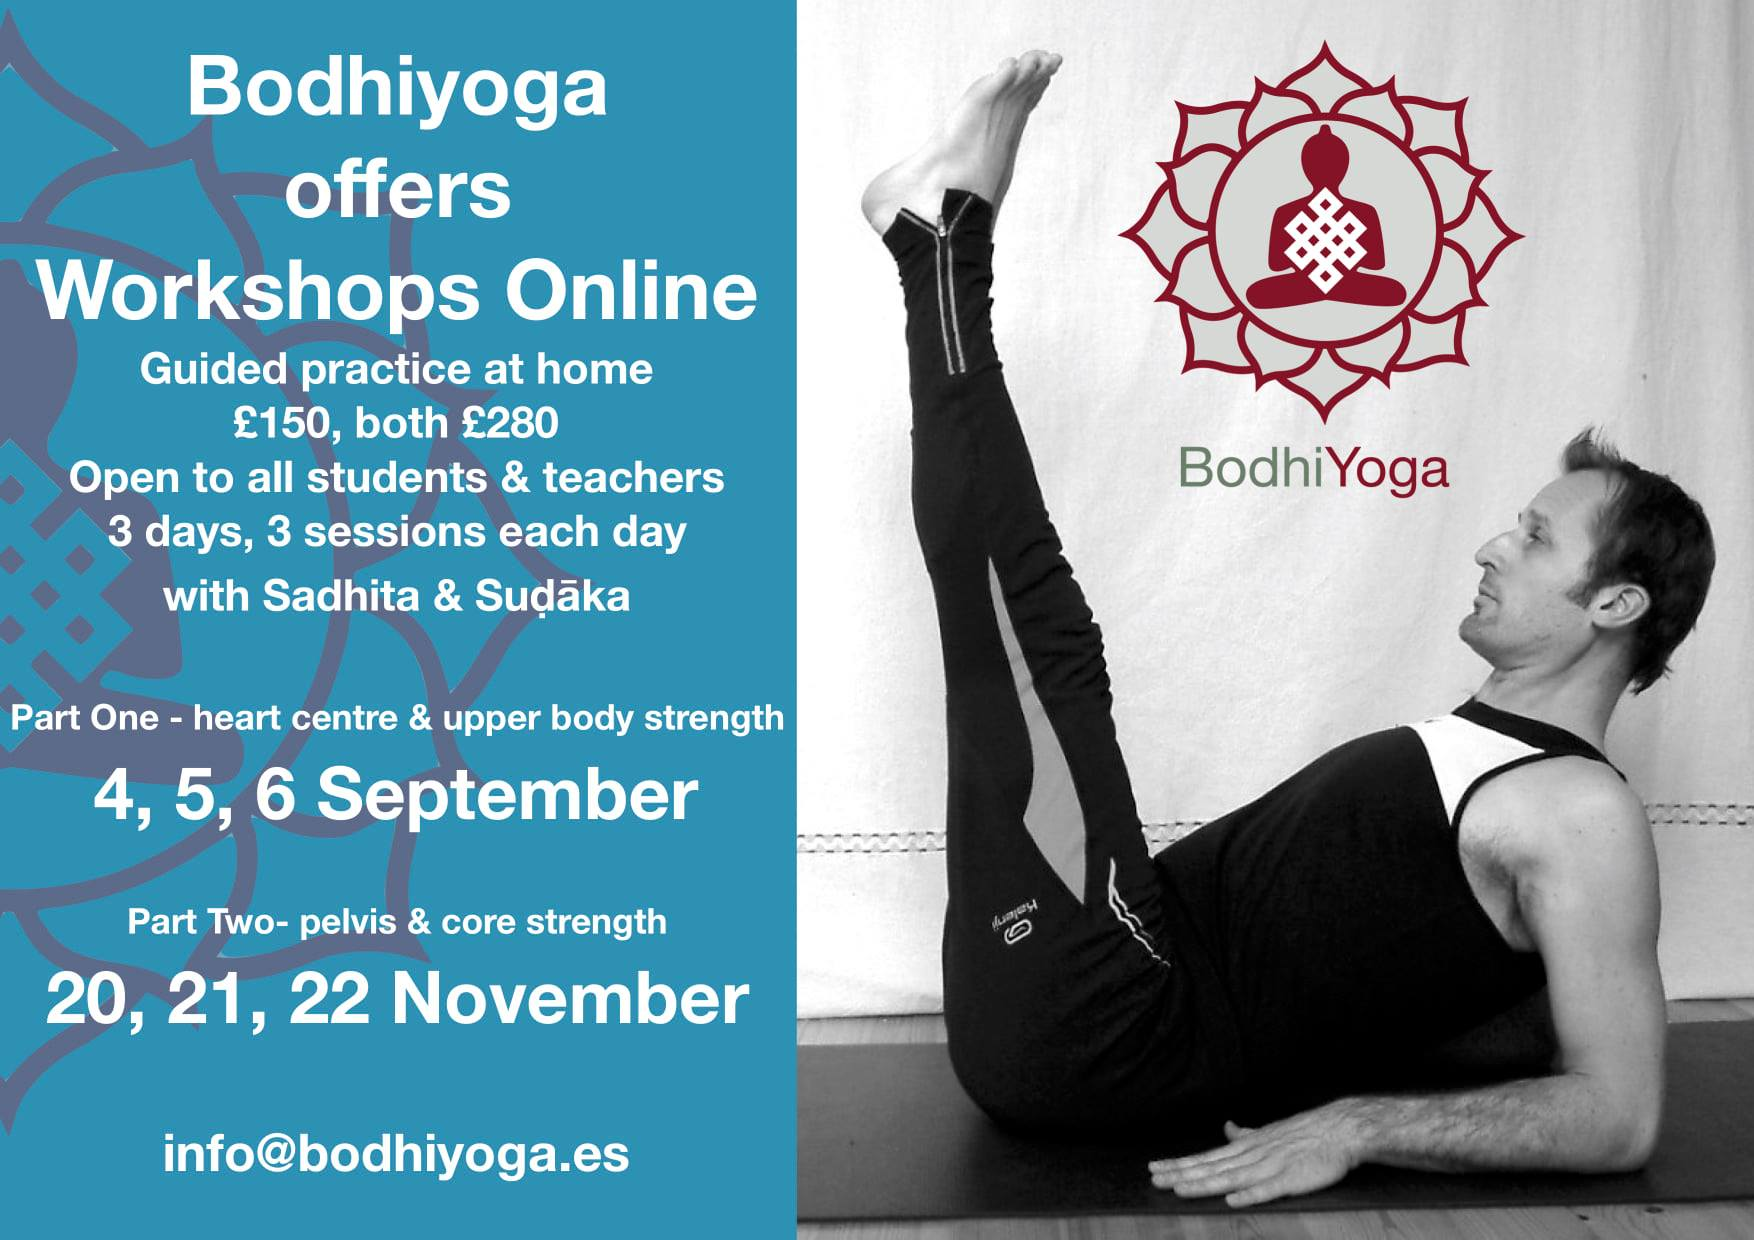 bodhiyoga-workshop-online